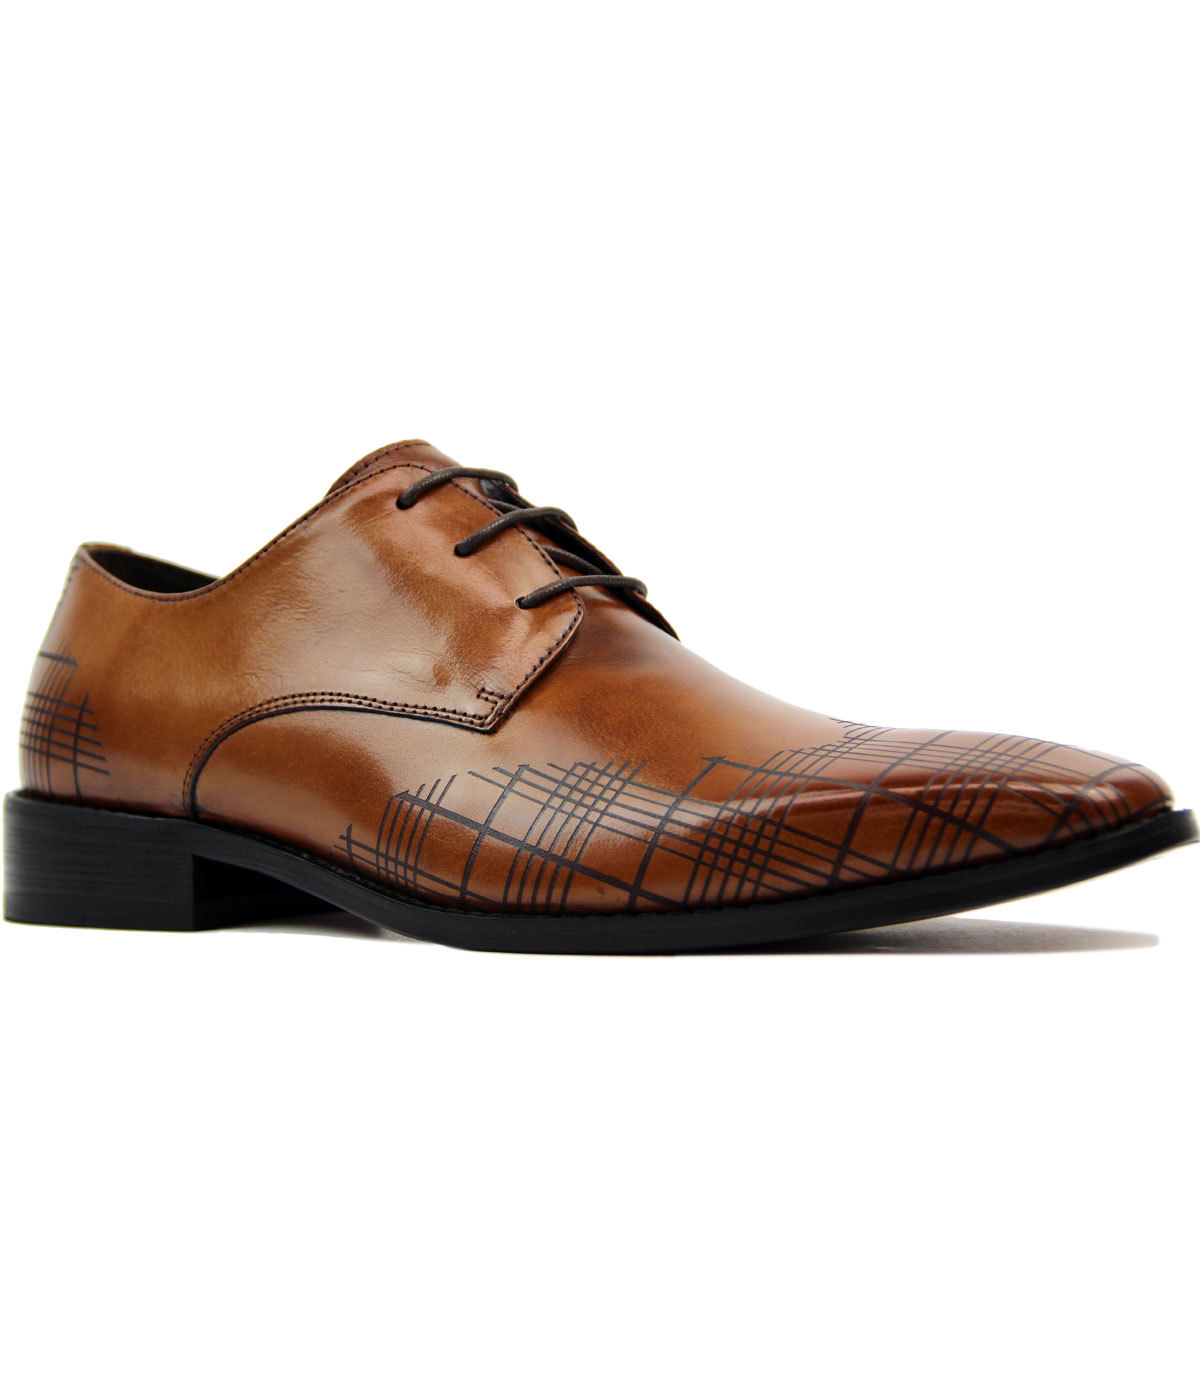 Palfrey PAOLO VANDINI Plaid Check Wing Cap Brogues